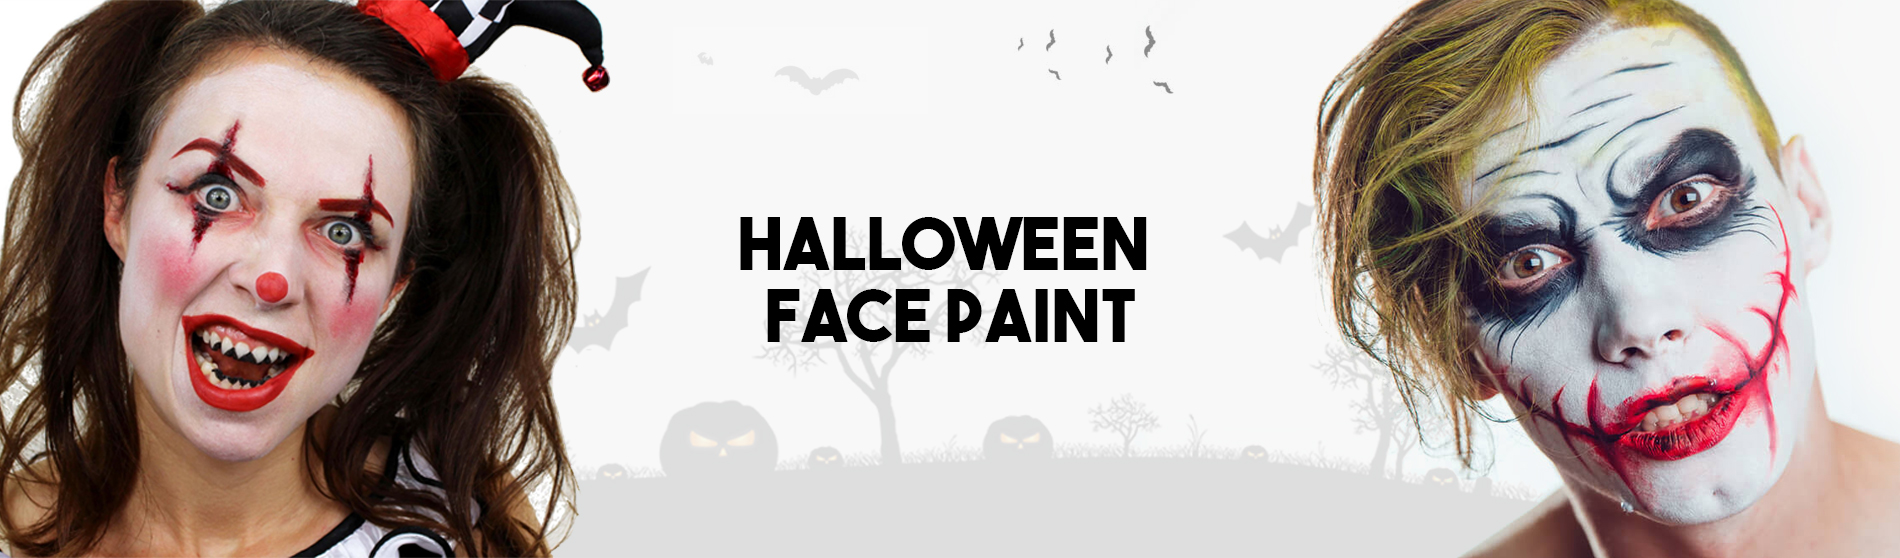 halloween face paint ideas | glendalehalloween